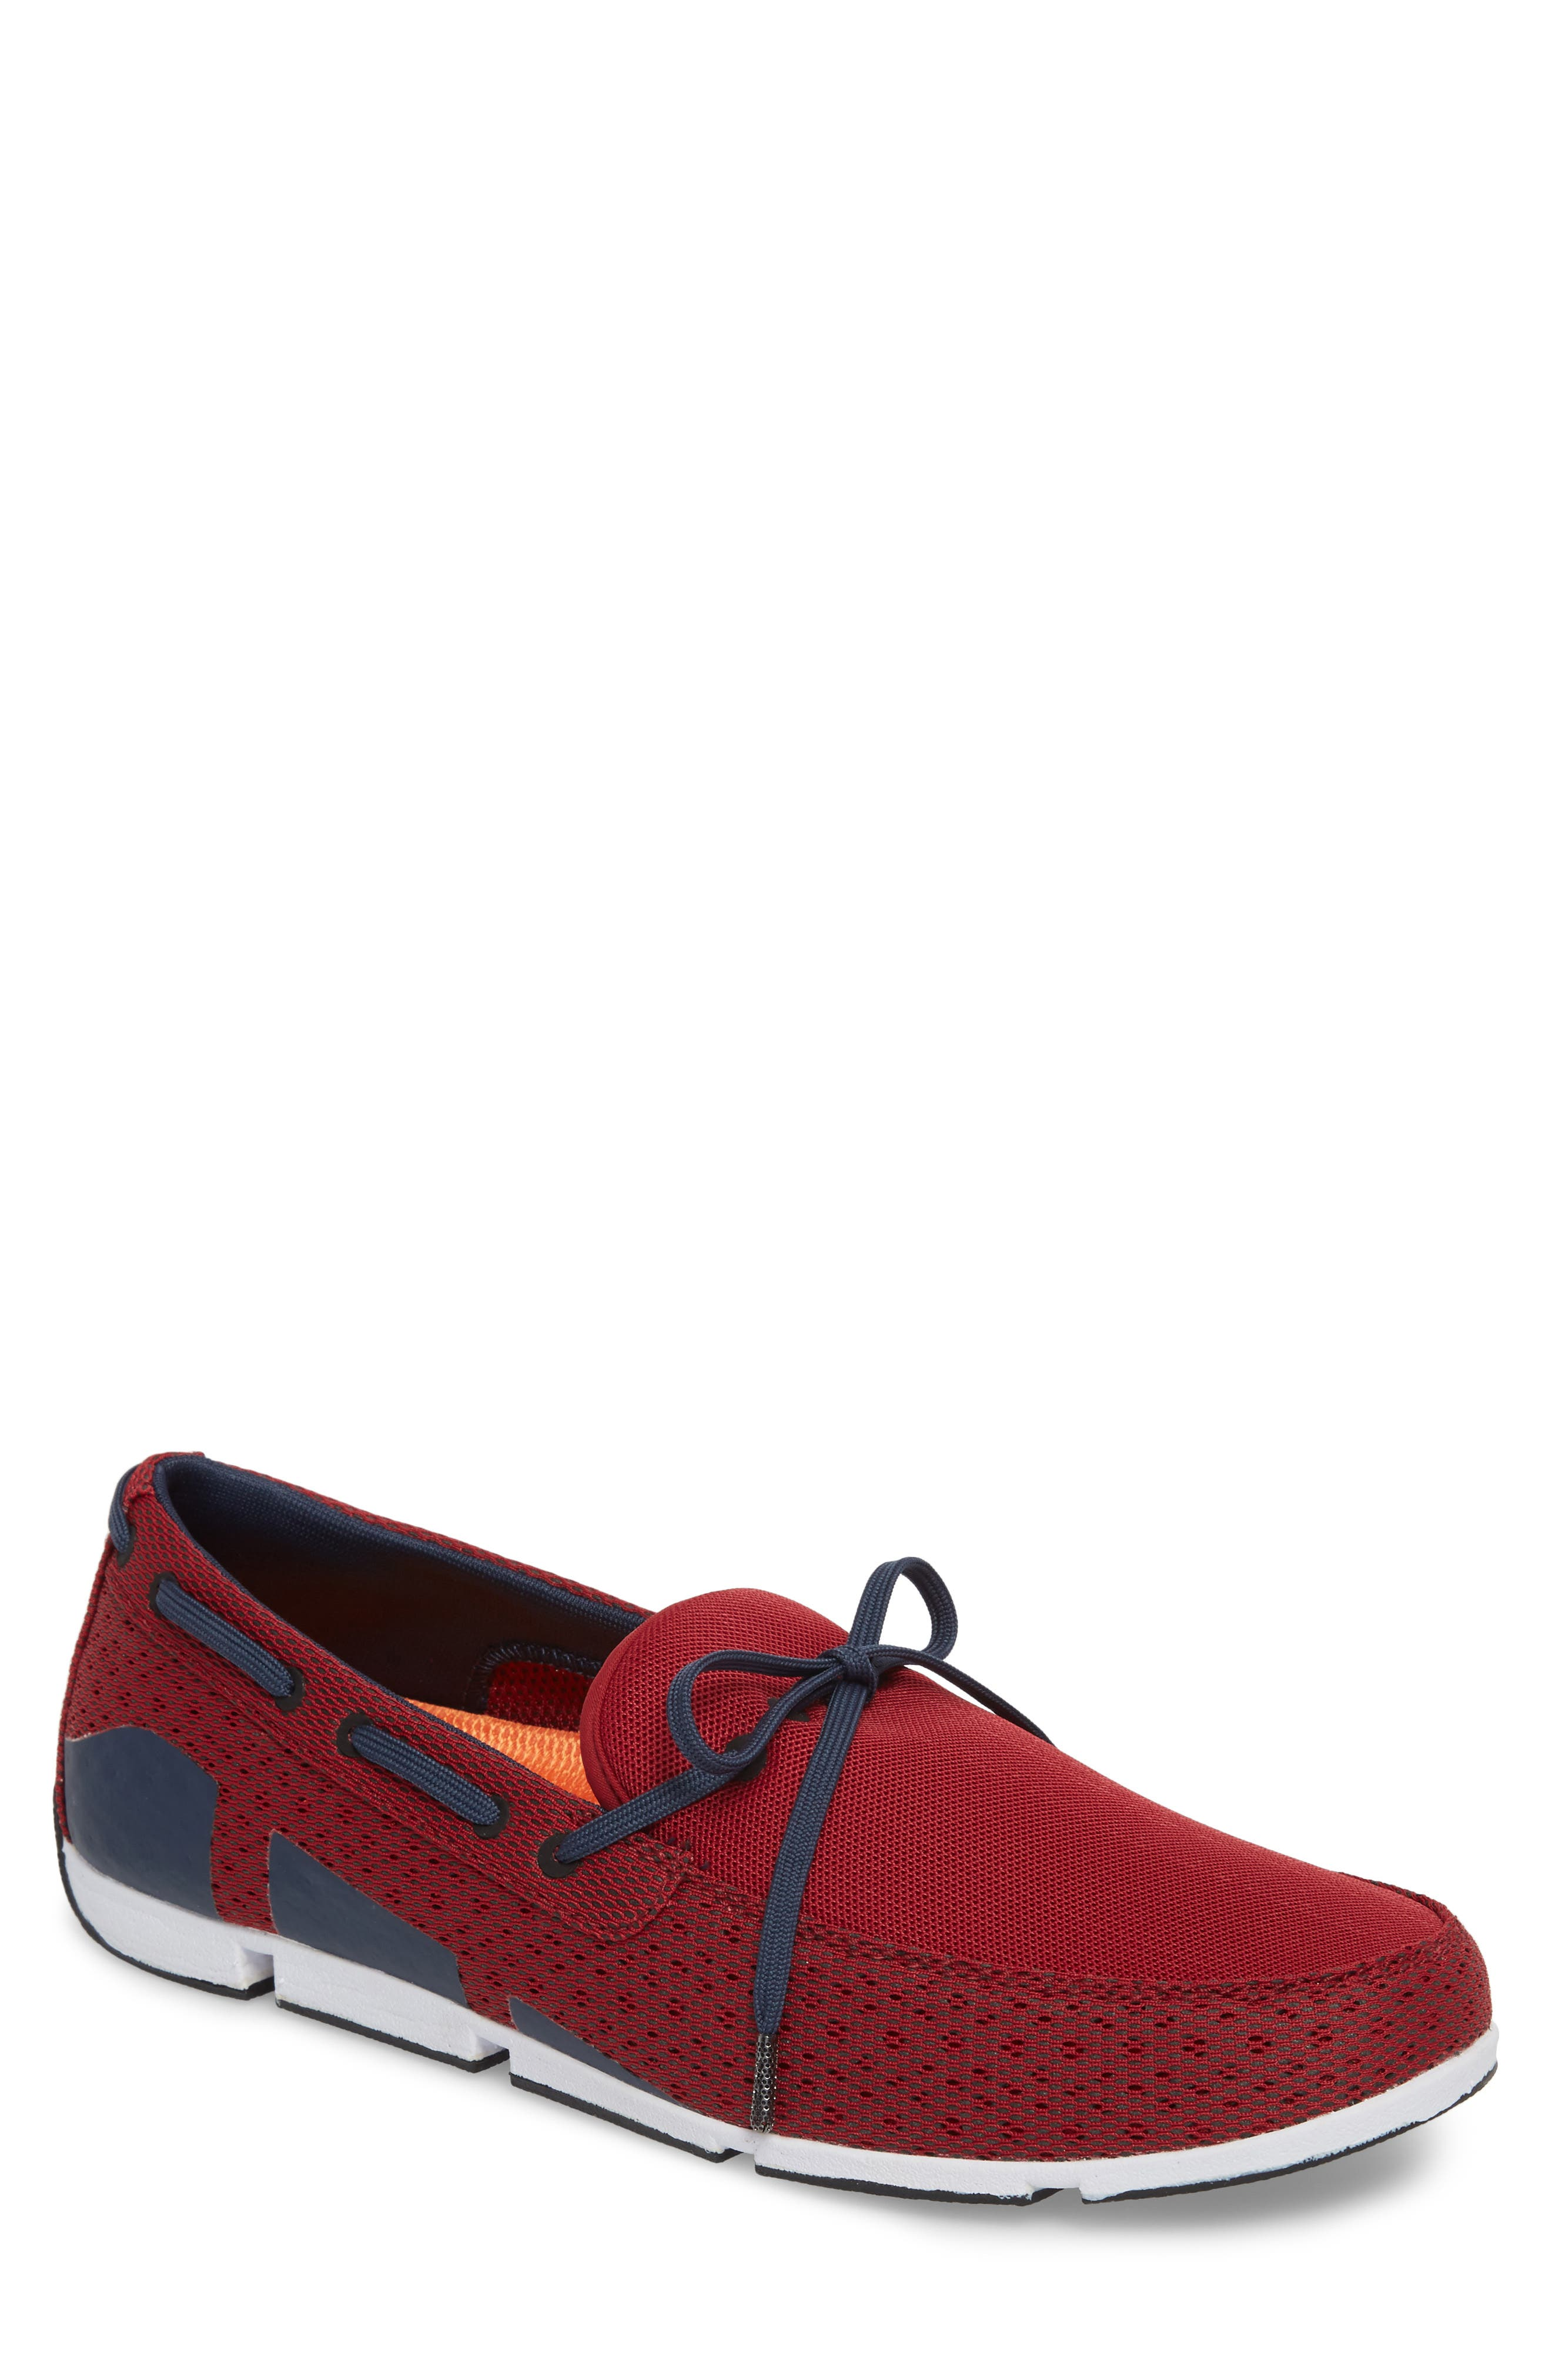 Main Image - Swims Breeze Loafer (Men)